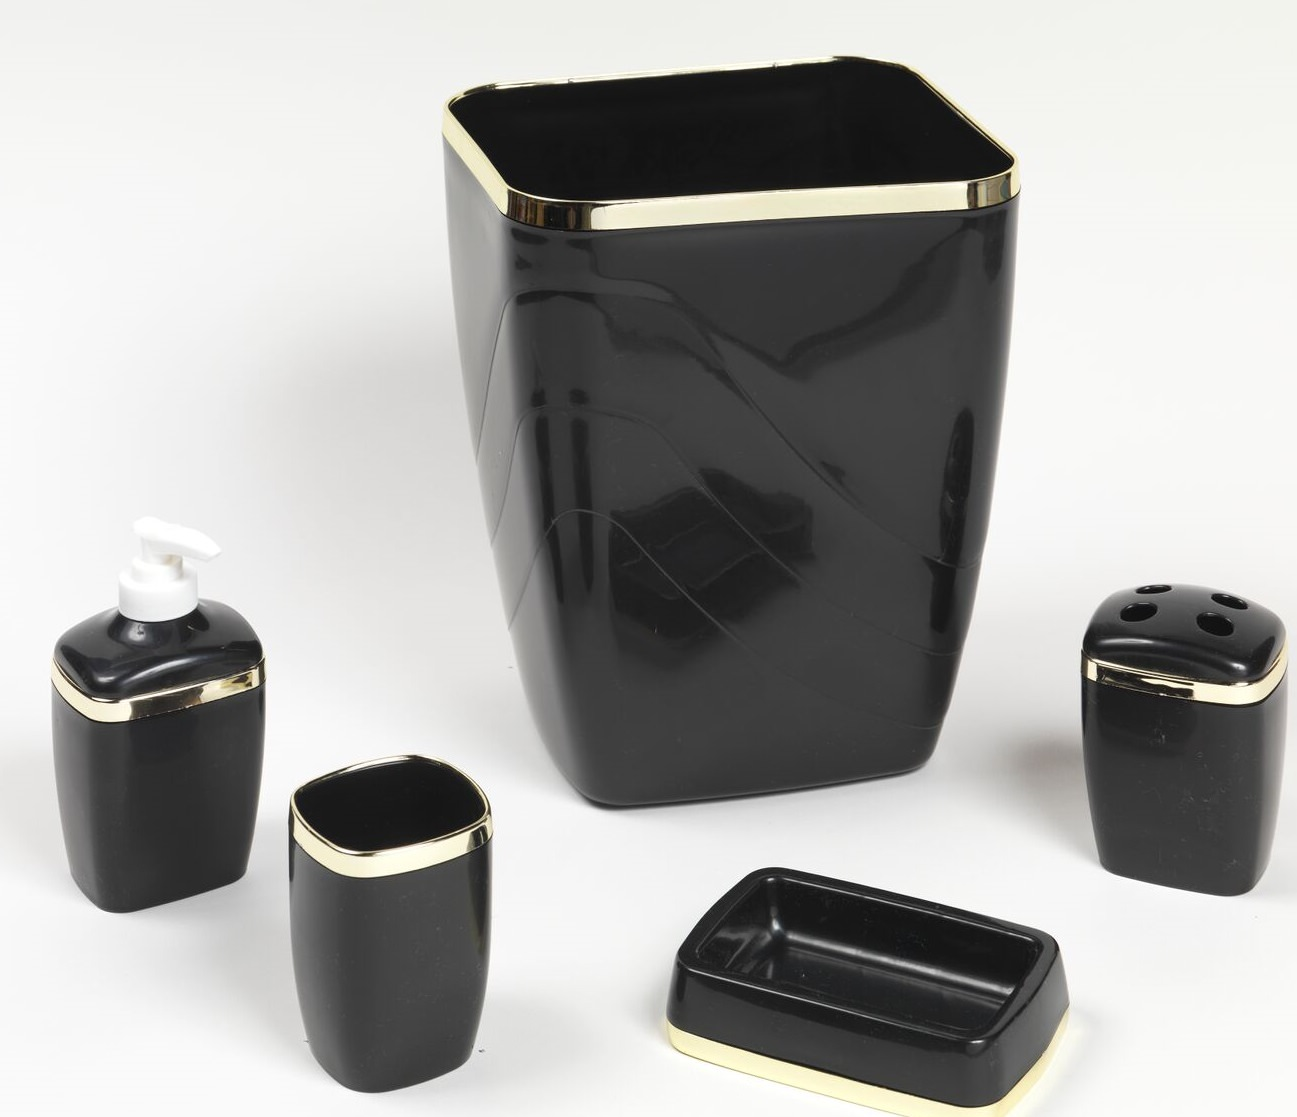 Black Bathroom Wastebasket Royal Bath 5 Piece Plastic Bath Accessory Set In Black